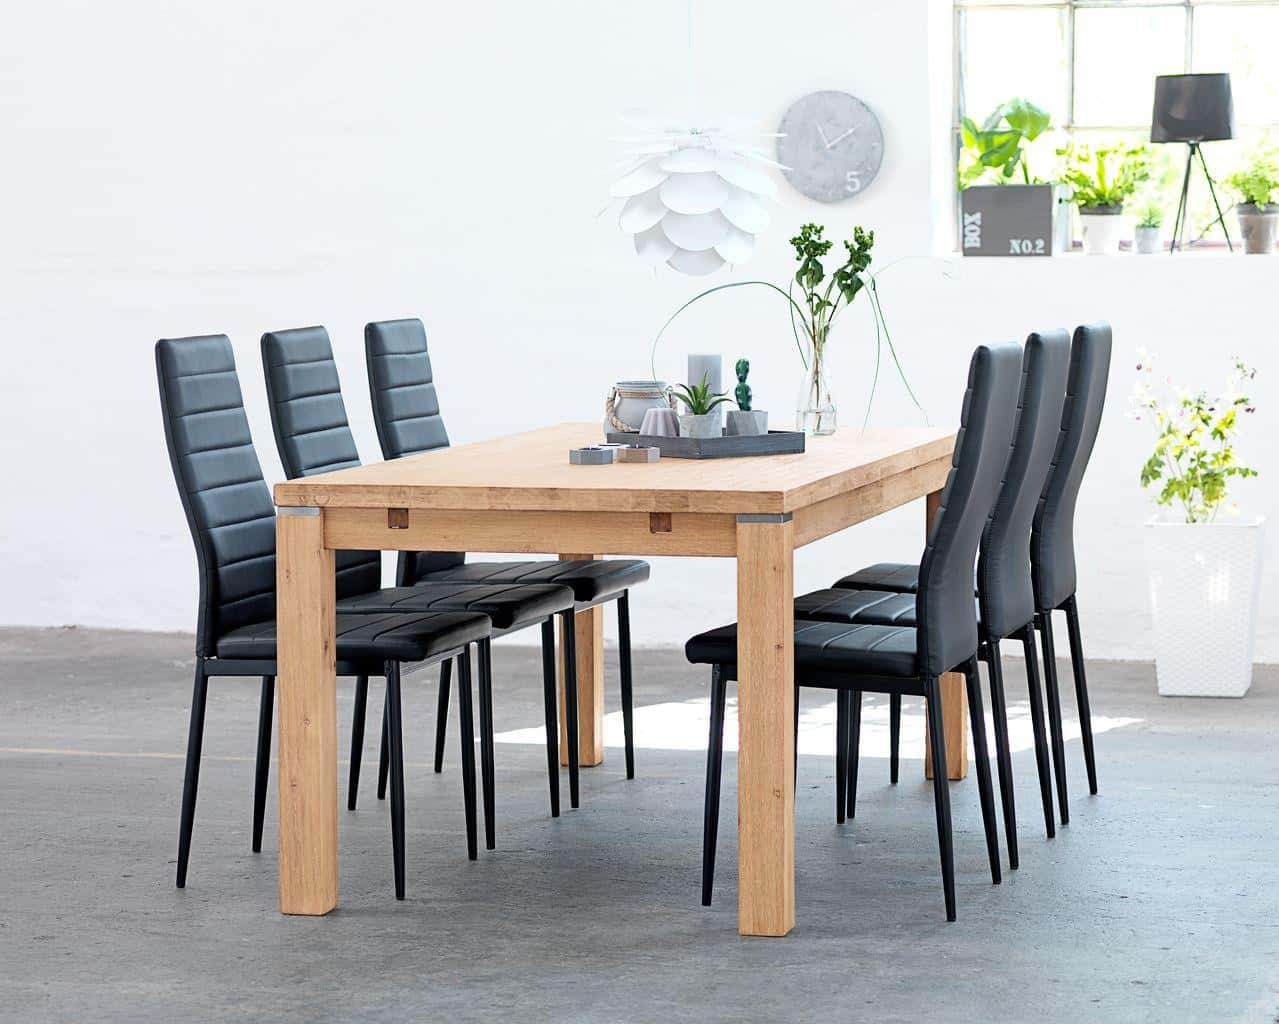 Modern faux leather black chair set at the simple light wooden table in the totally white room